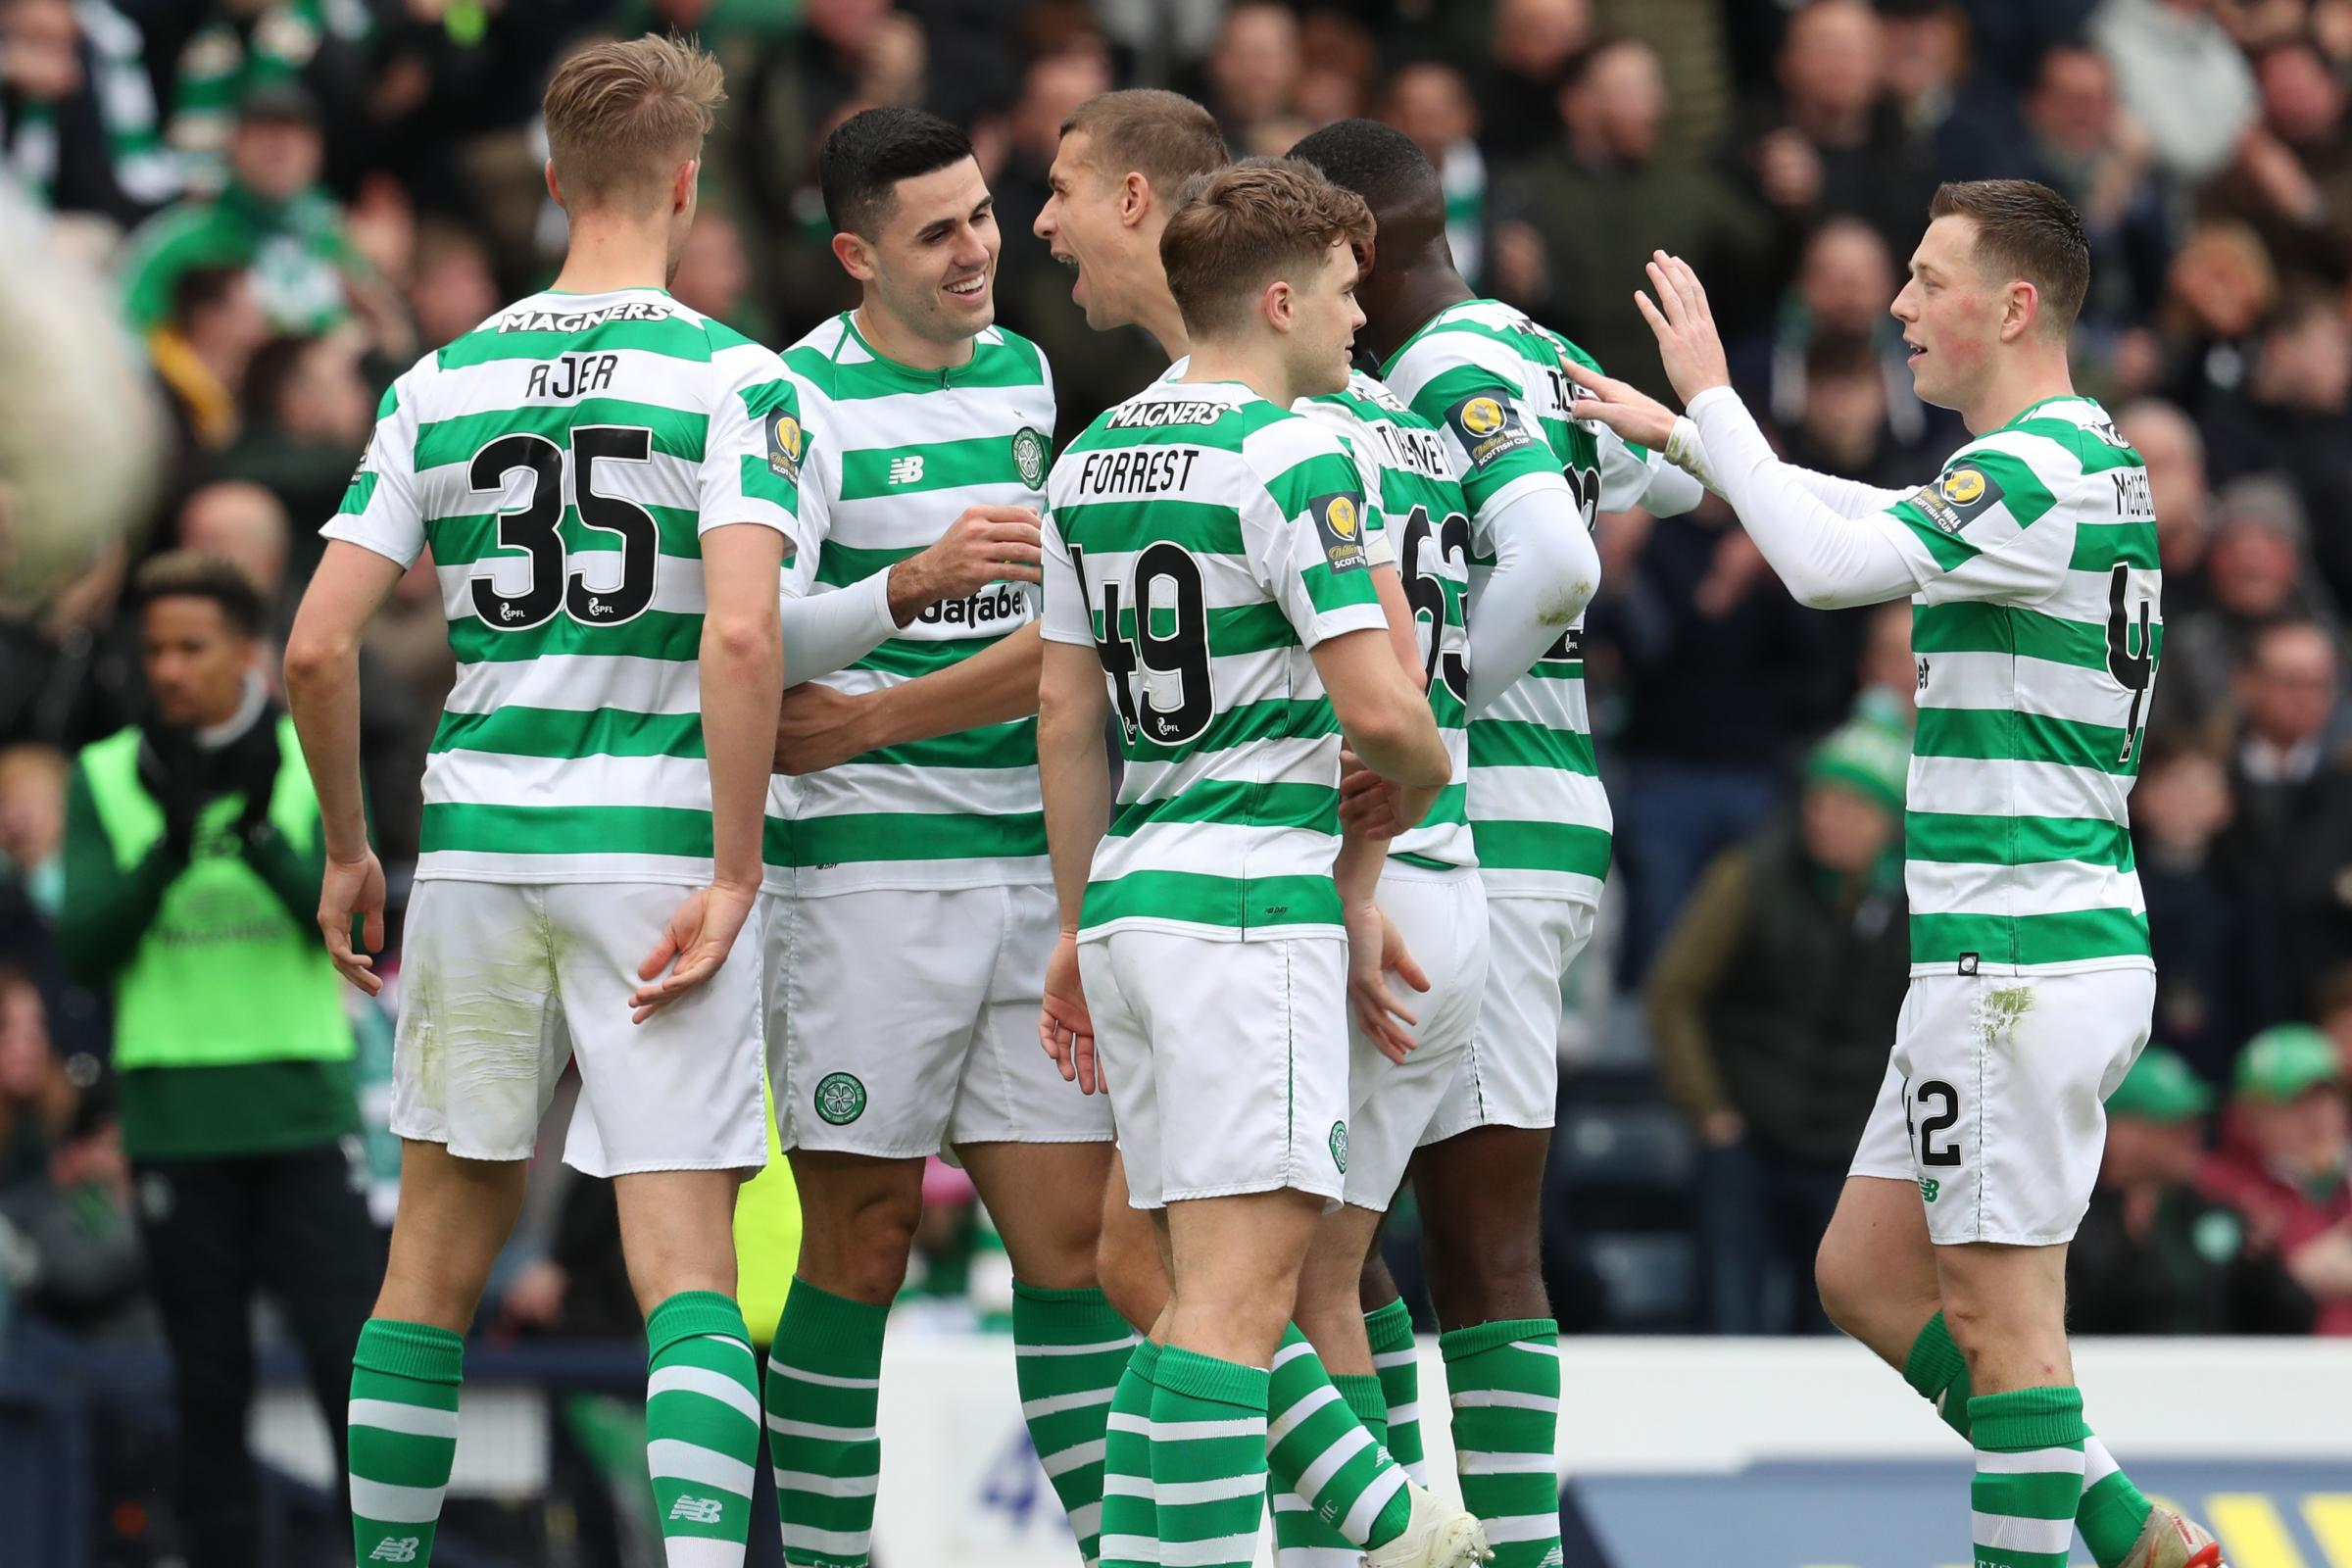 Celtic are still on course for another domestic treble